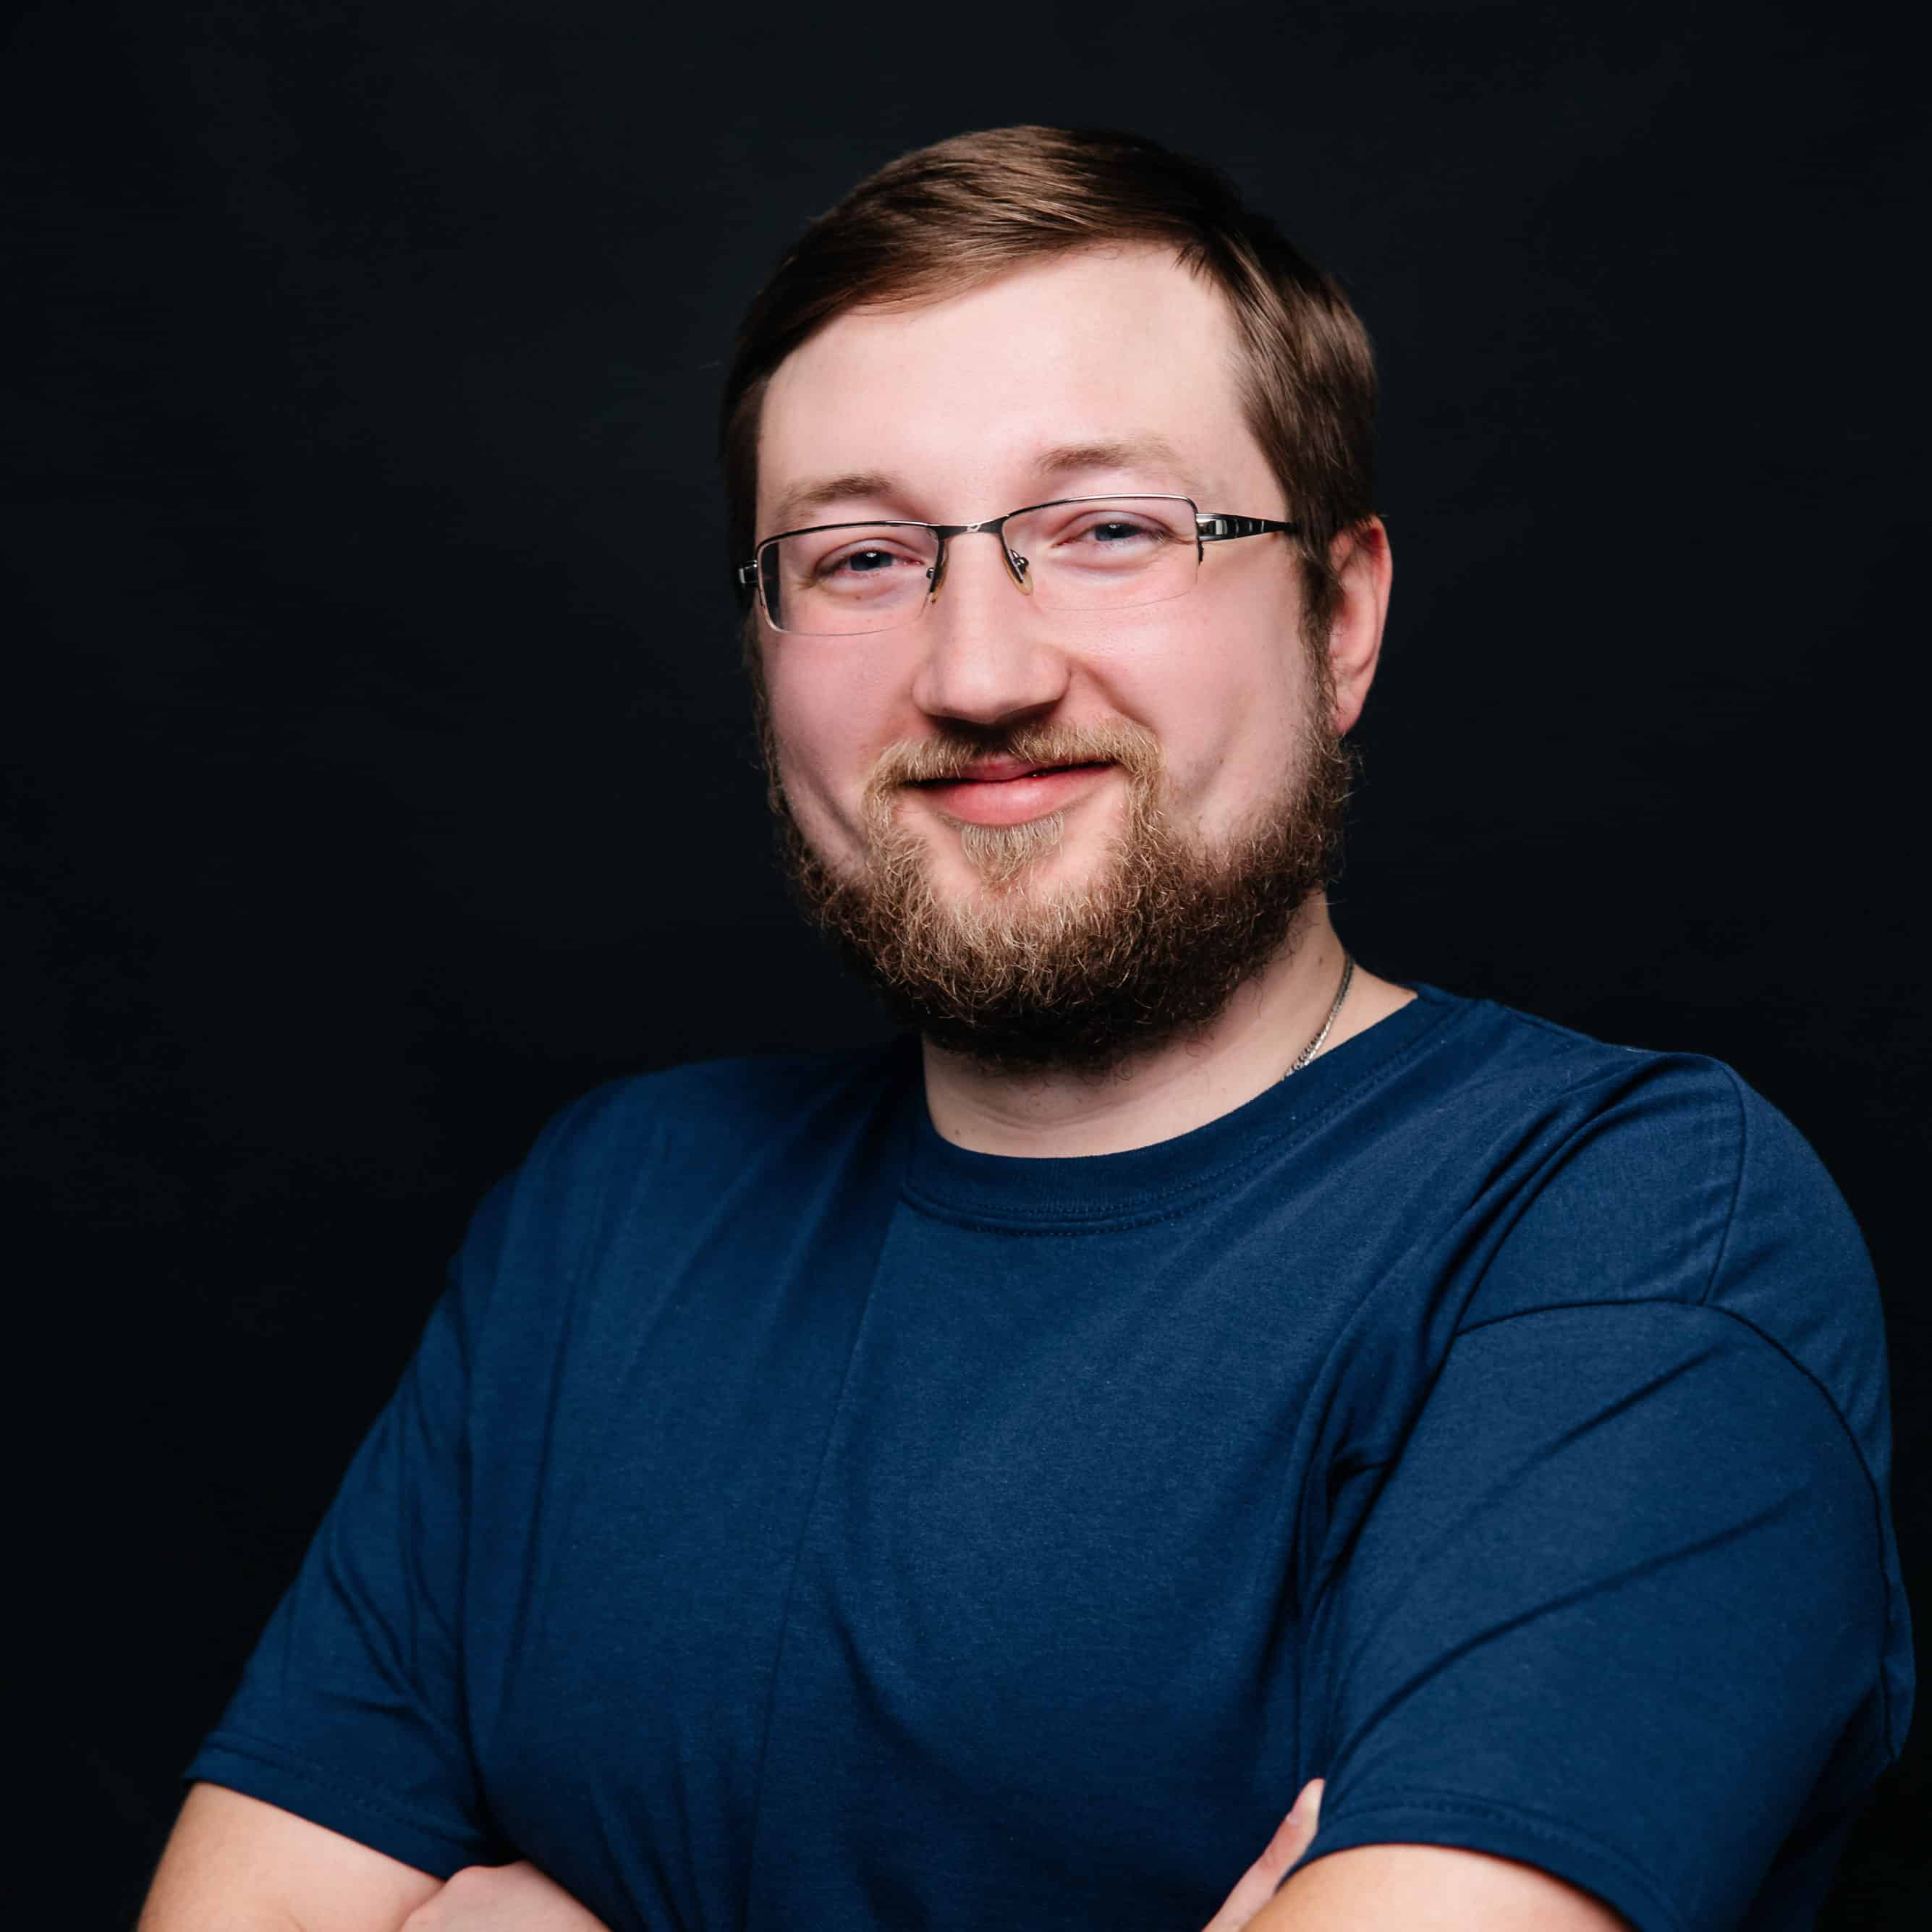 Dmitry WHA project manager